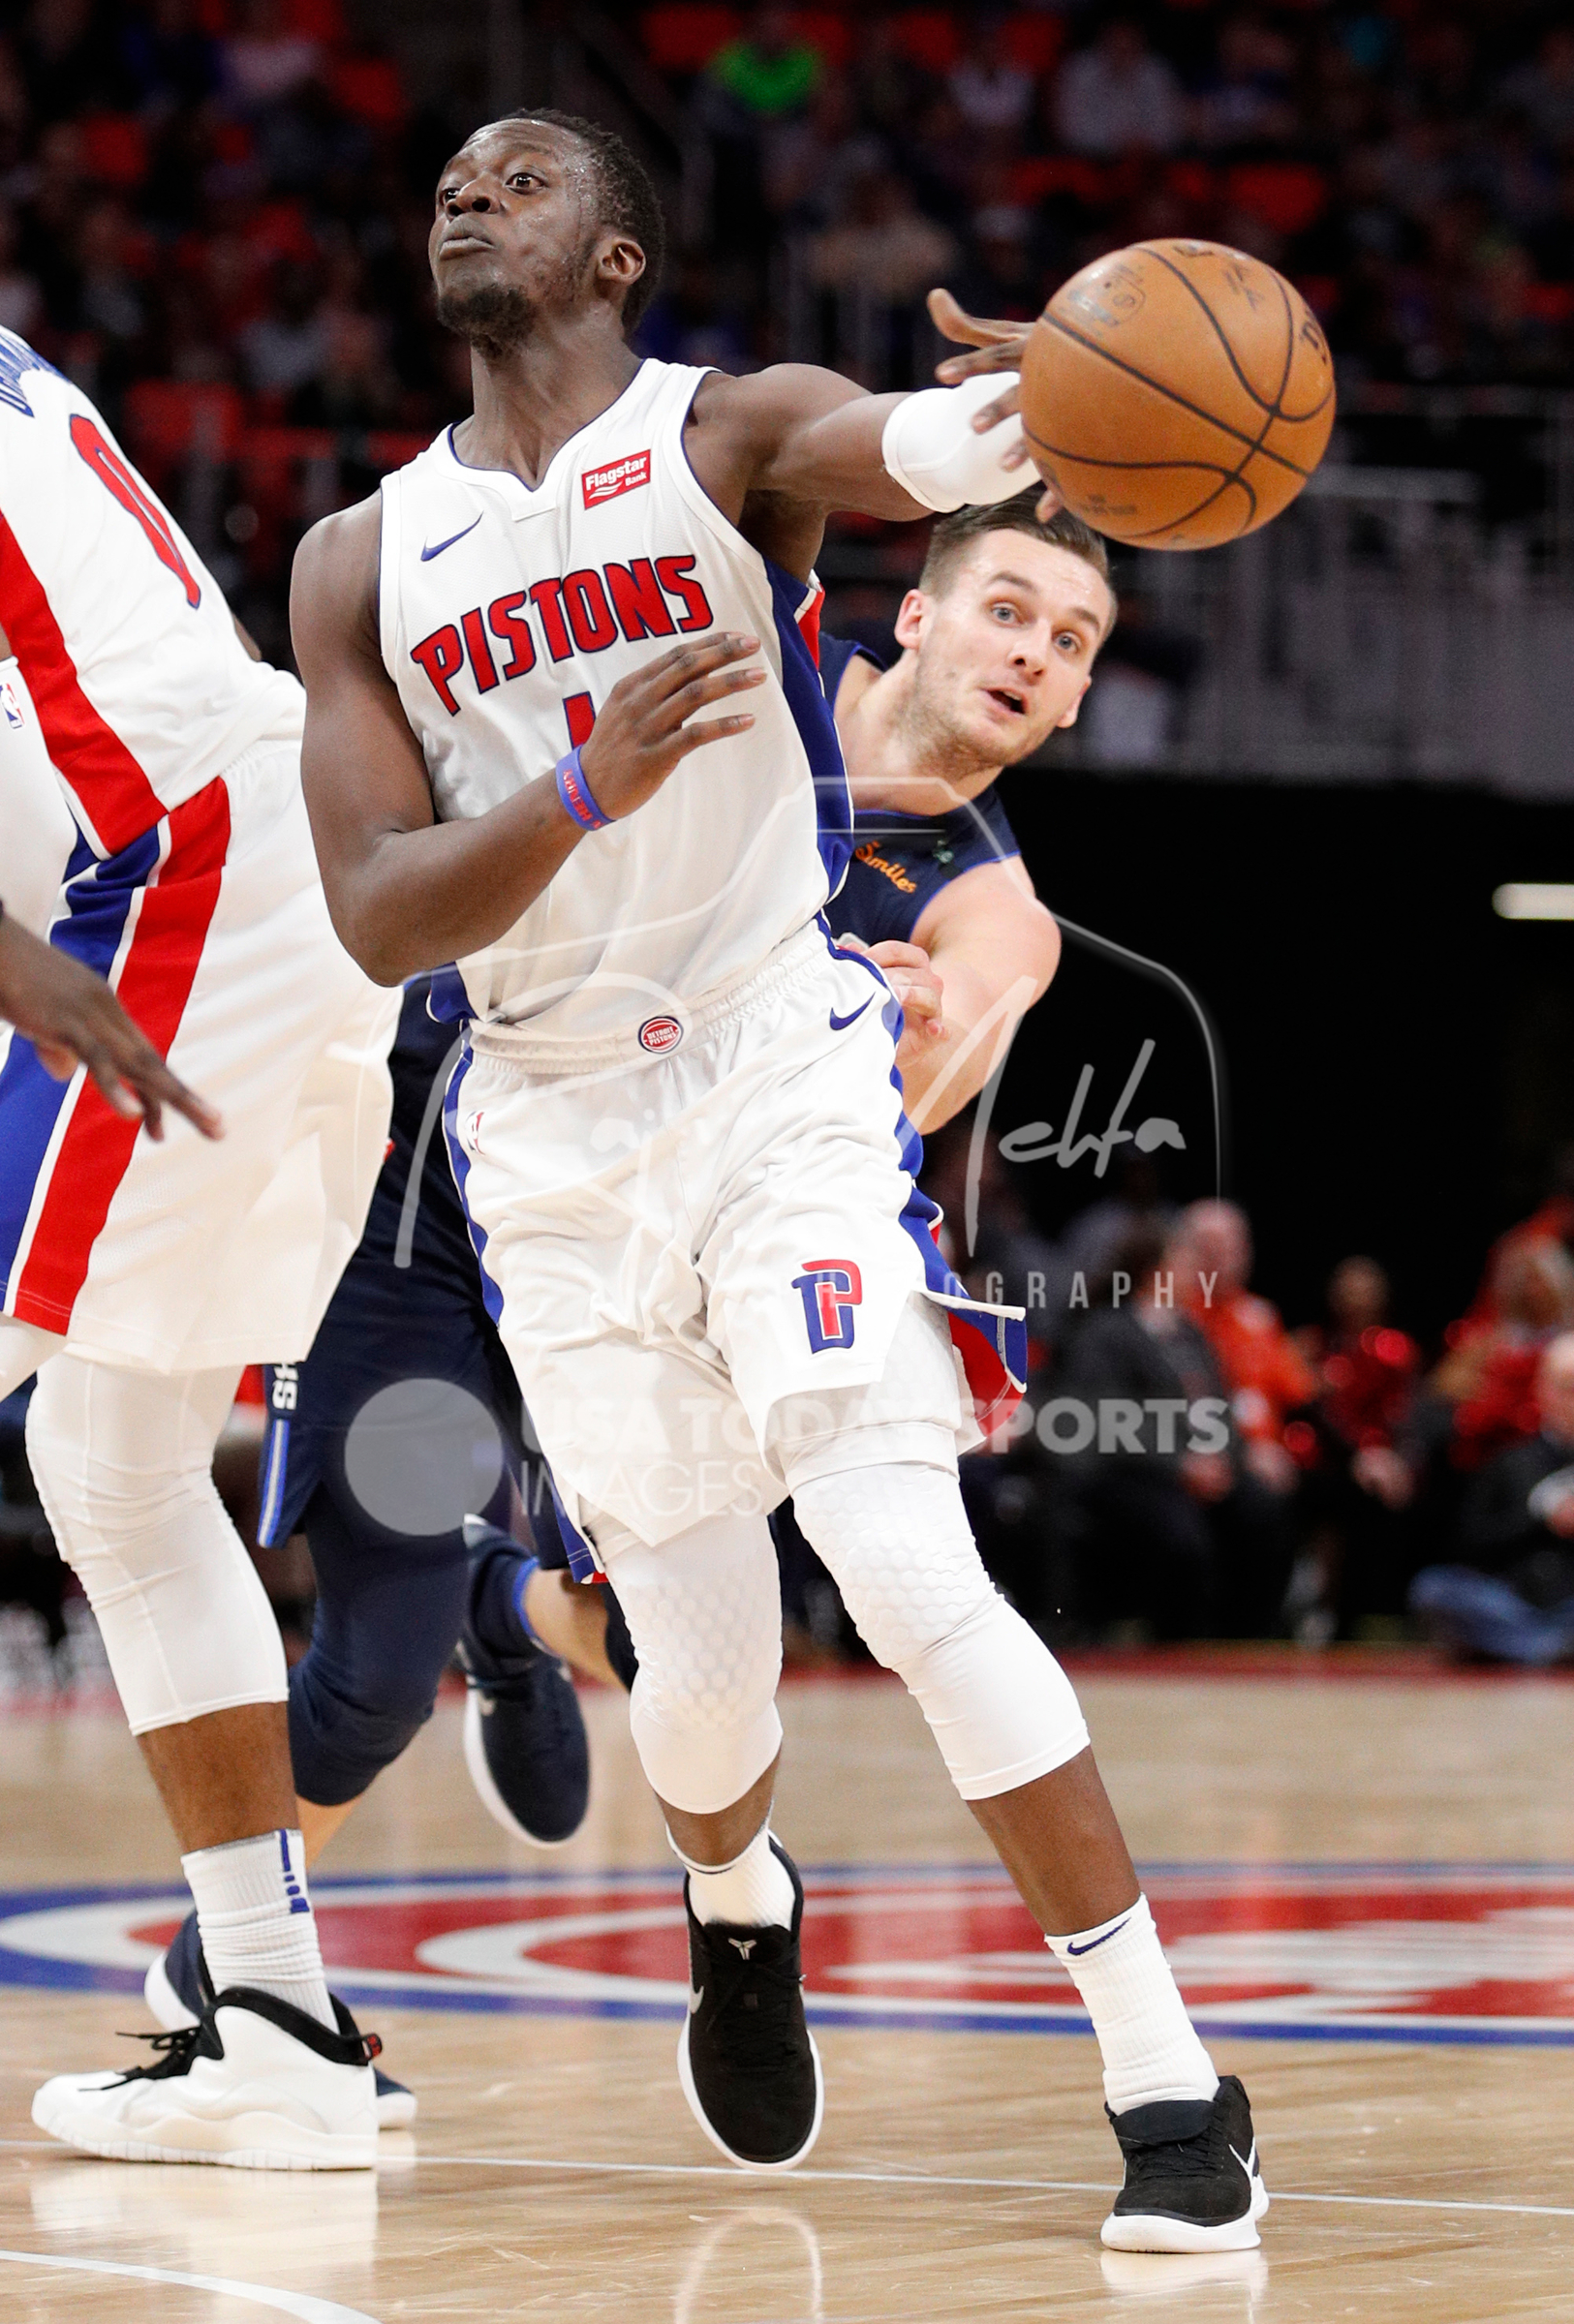 Apr 6, 2018; Detroit, MI, USA; Detroit Pistons guard Reggie Jackson (1) passes the ball in front of Dallas Mavericks guard Kyle Collinsworth (8) during the fourth quarter at Little Caesars Arena. Mandatory Credit: Raj Mehta-USA TODAY Sports